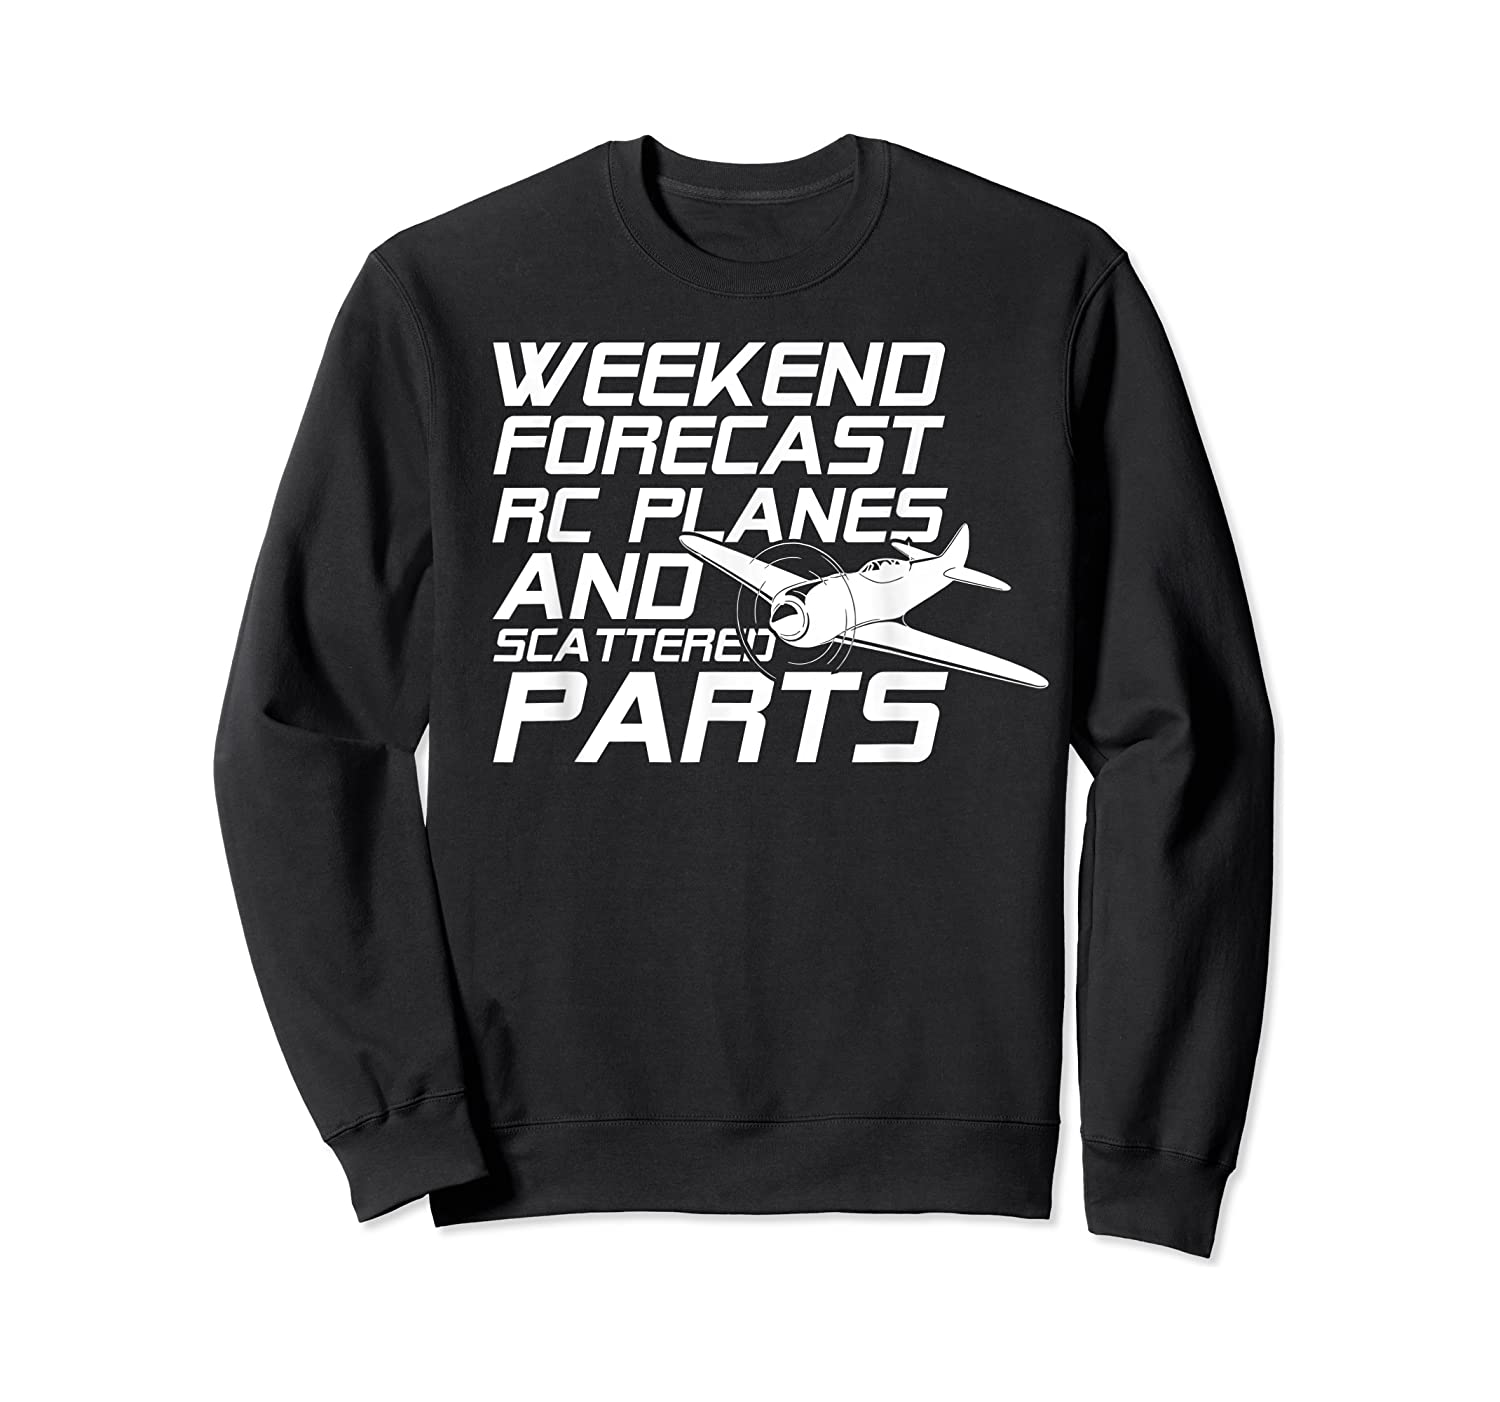 Rc Plane T-shirt For Guys Rc Planes And Scattered Parts Crewneck Sweater